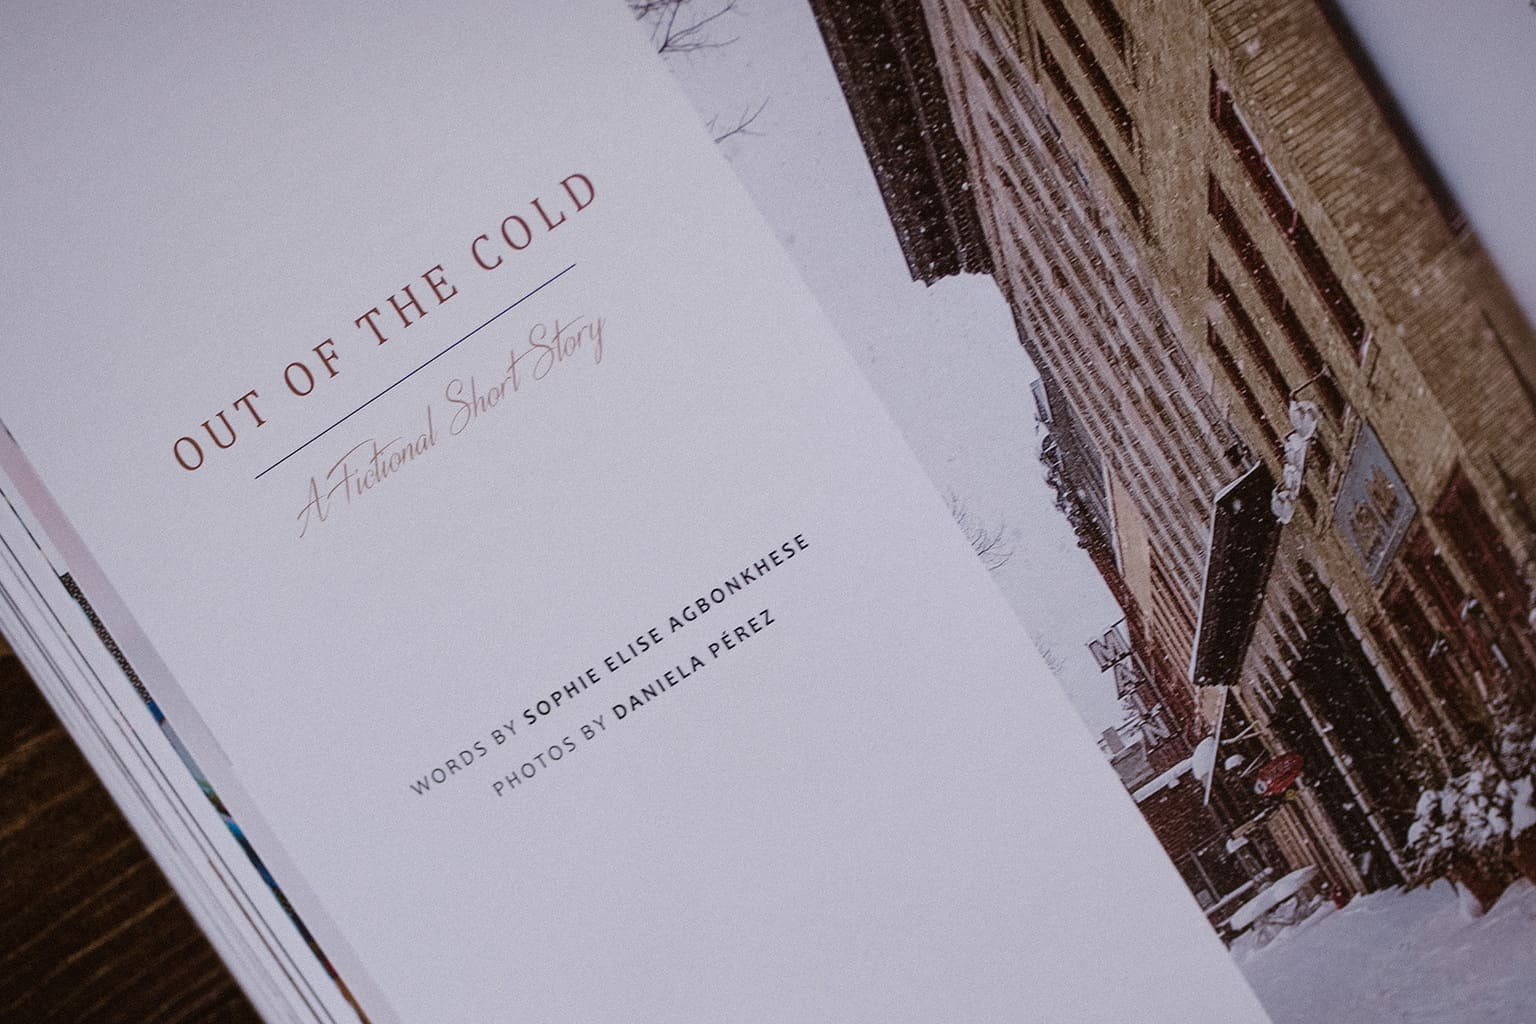 Joyful Life Magazine Treasure Issue - Out of the Cold